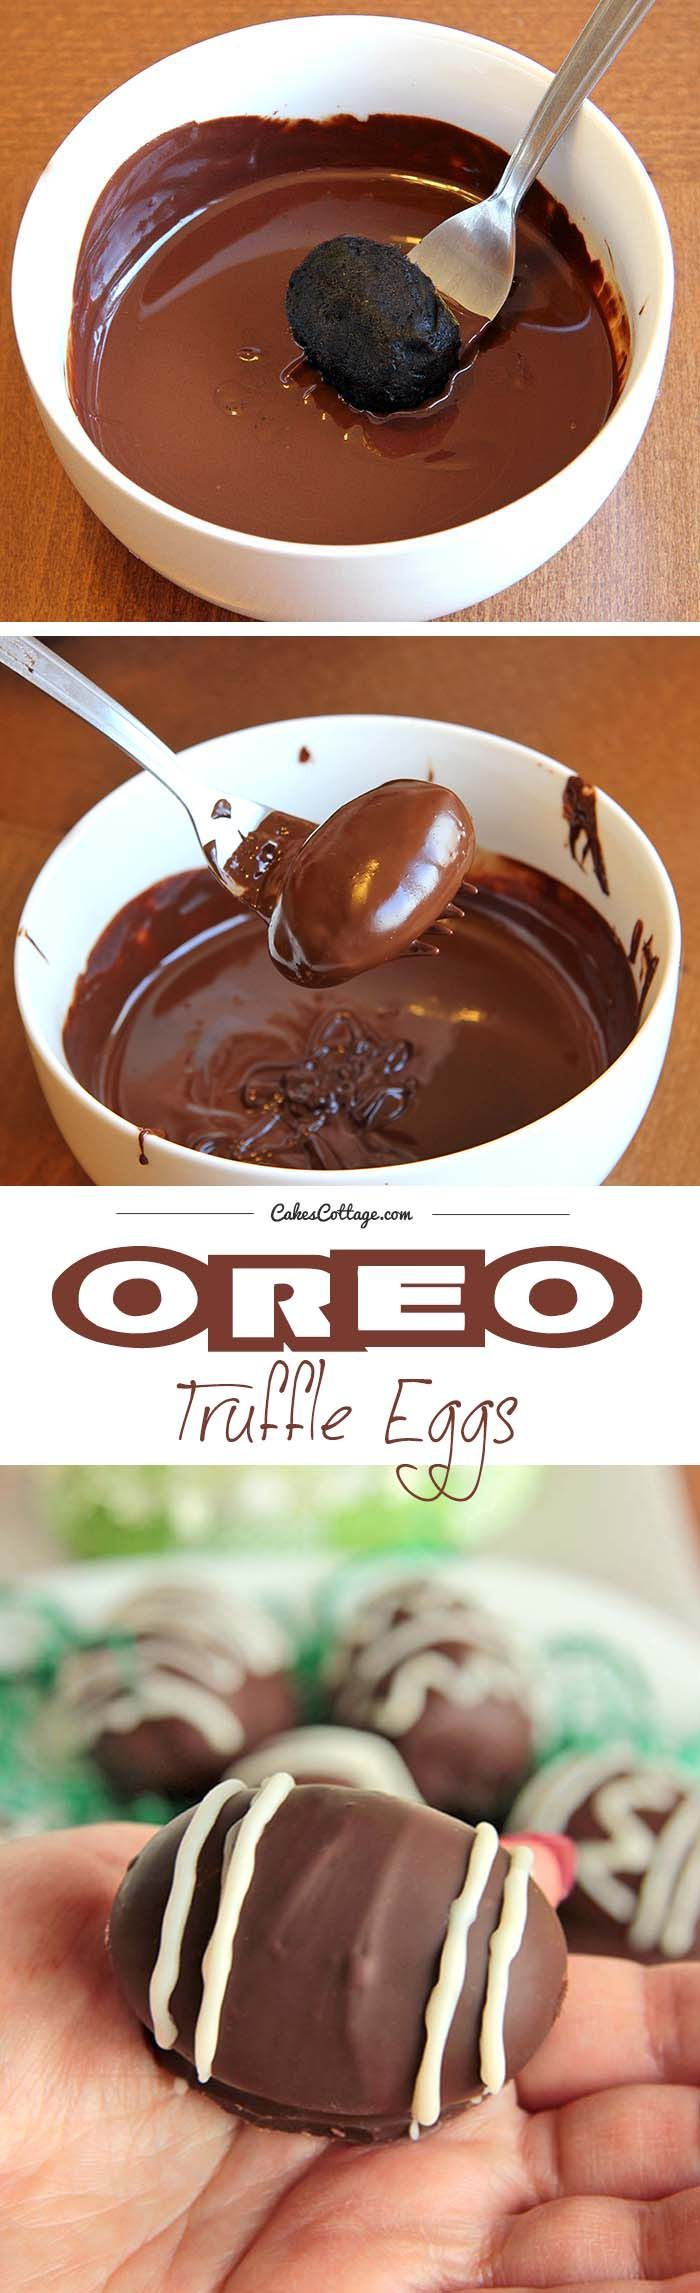 Easy Oreo Truffle Eggs Easter is on the way and so are the Oreo Truffle Eggs! And if you have been searching for a quick and easy, totally adorable, Easter gift, look no further. Oreo Truffle Eggs Easter is on the way and so are the Oreo Truffle Eggs! And if you have been searching for a quick and easy, totally adorable, Easter gift, look no further. |  |Easter is on the way and so are the Oreo Truffle Eggs! And if you have been searching for a quick and easy, totally adorable, Easter gift, look no further. |  |